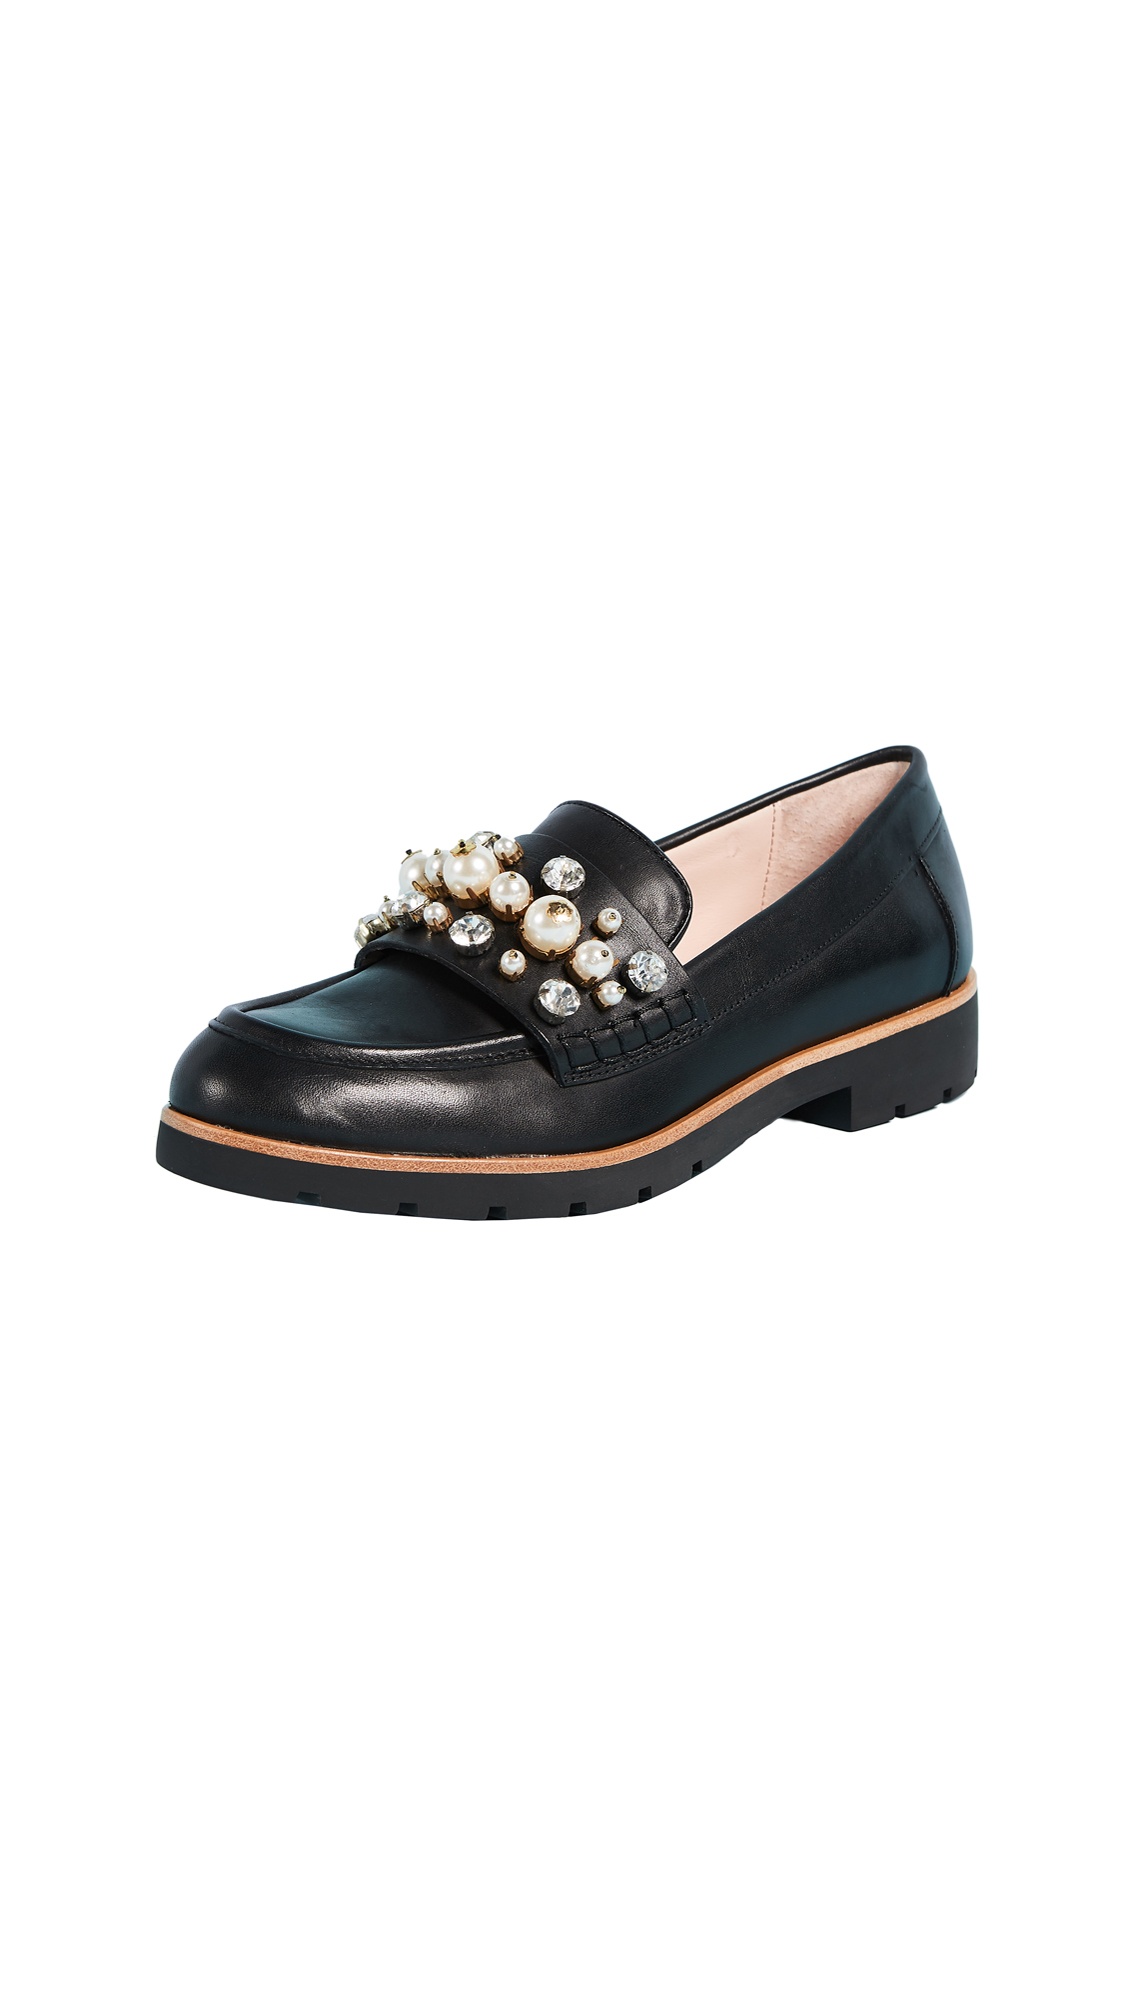 Kate Spade New York Karry Too Studded Loafers - Black